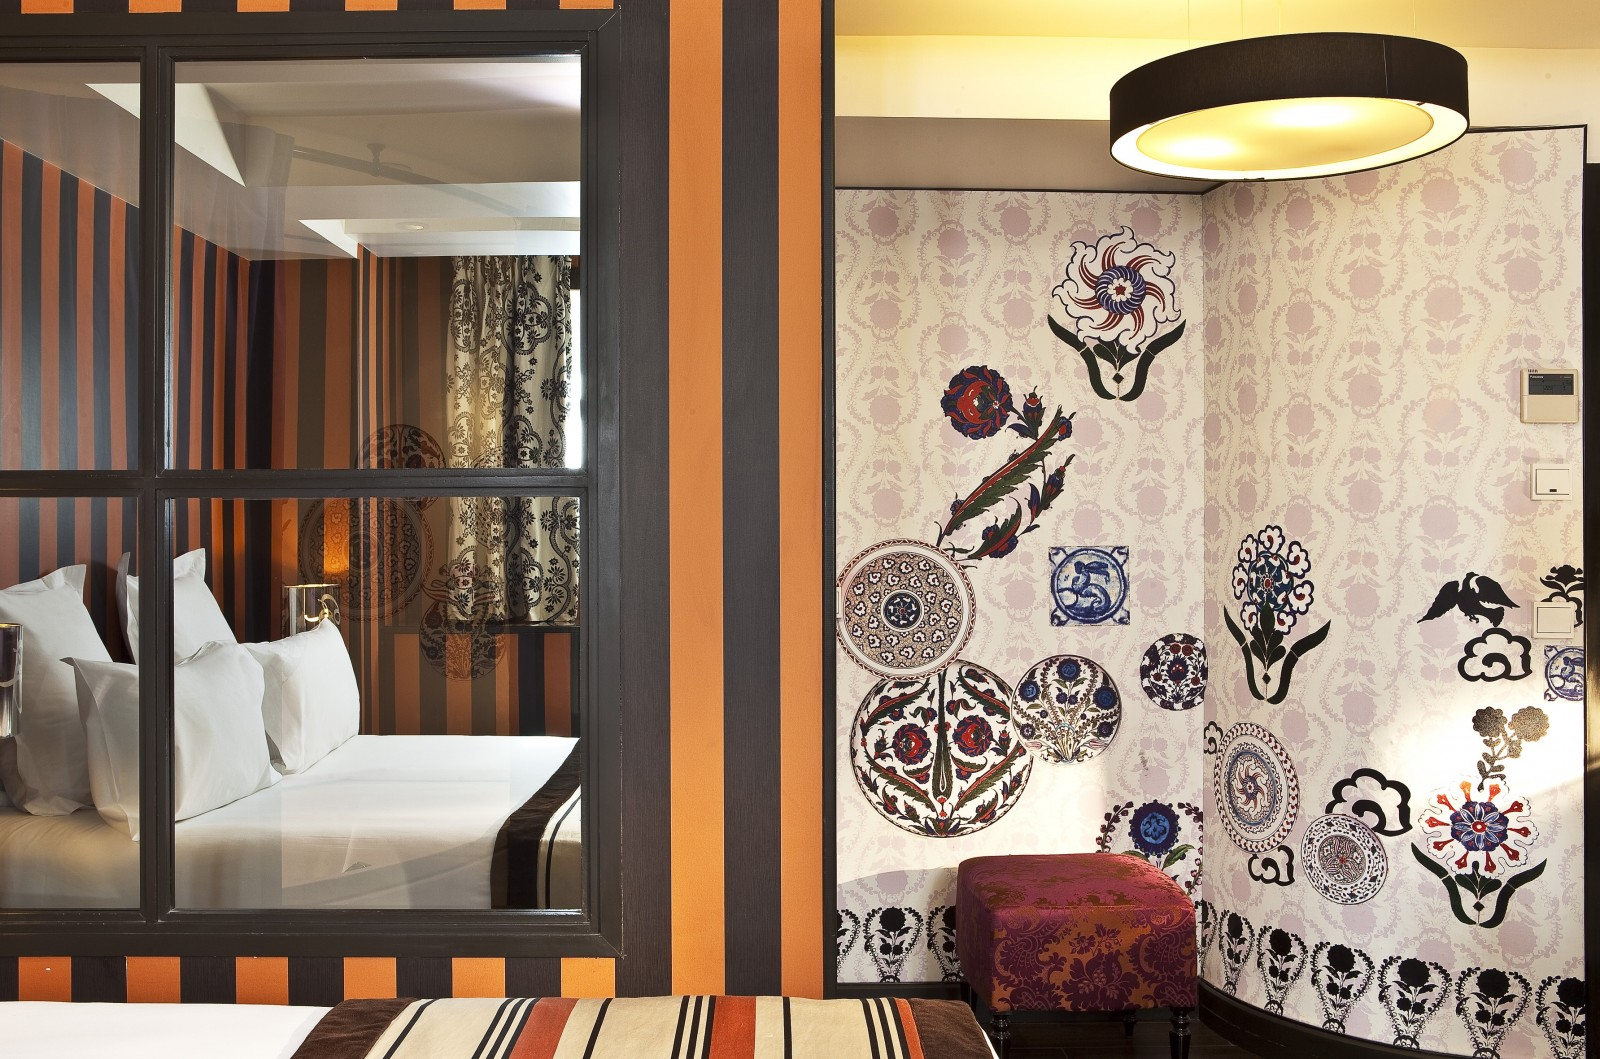 bellechasse-hotel-interior-design-christian-lacroix